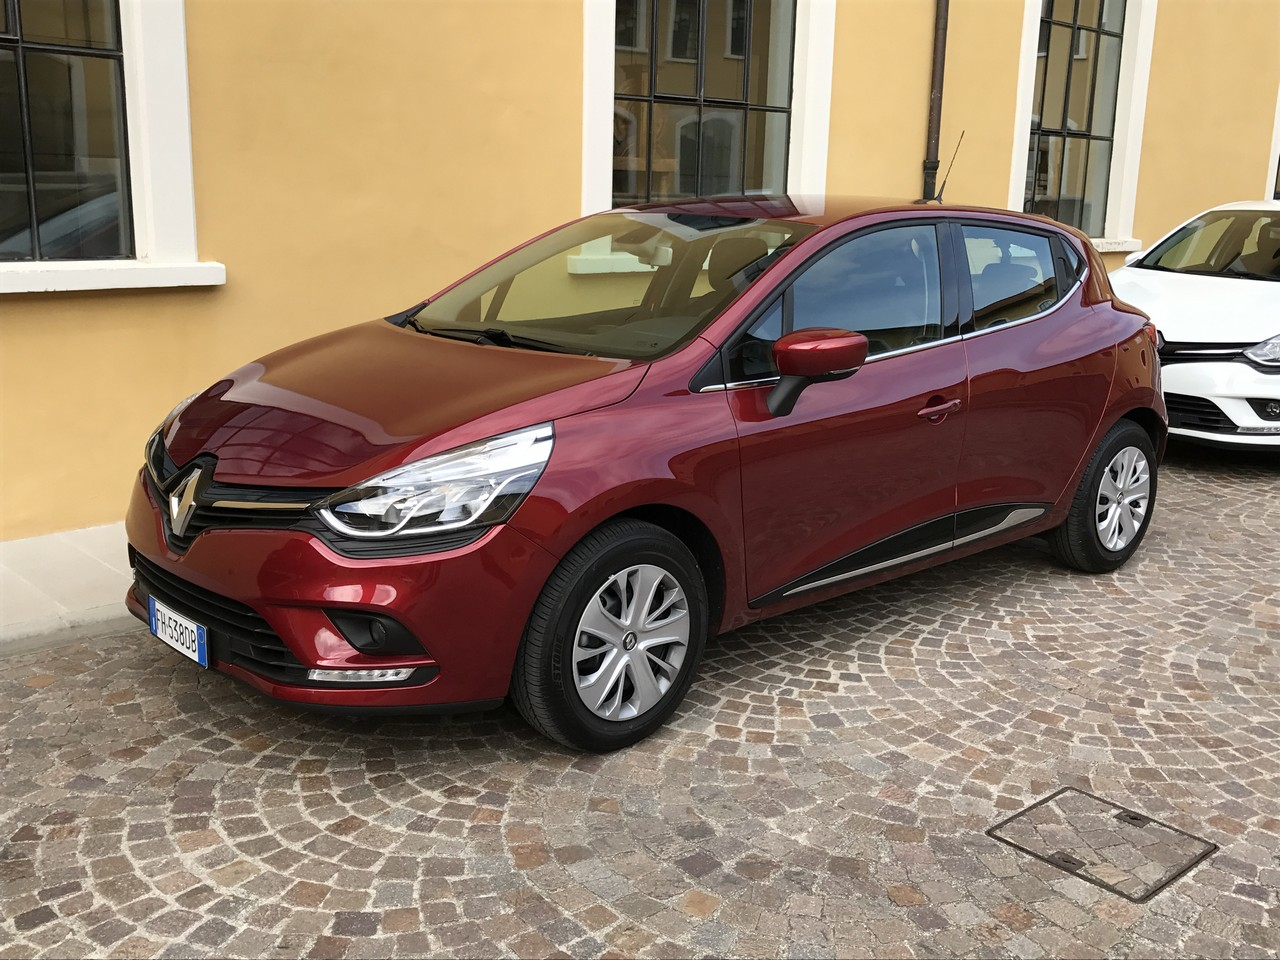 renault clio turbo gpl my 2017 12 30. Black Bedroom Furniture Sets. Home Design Ideas